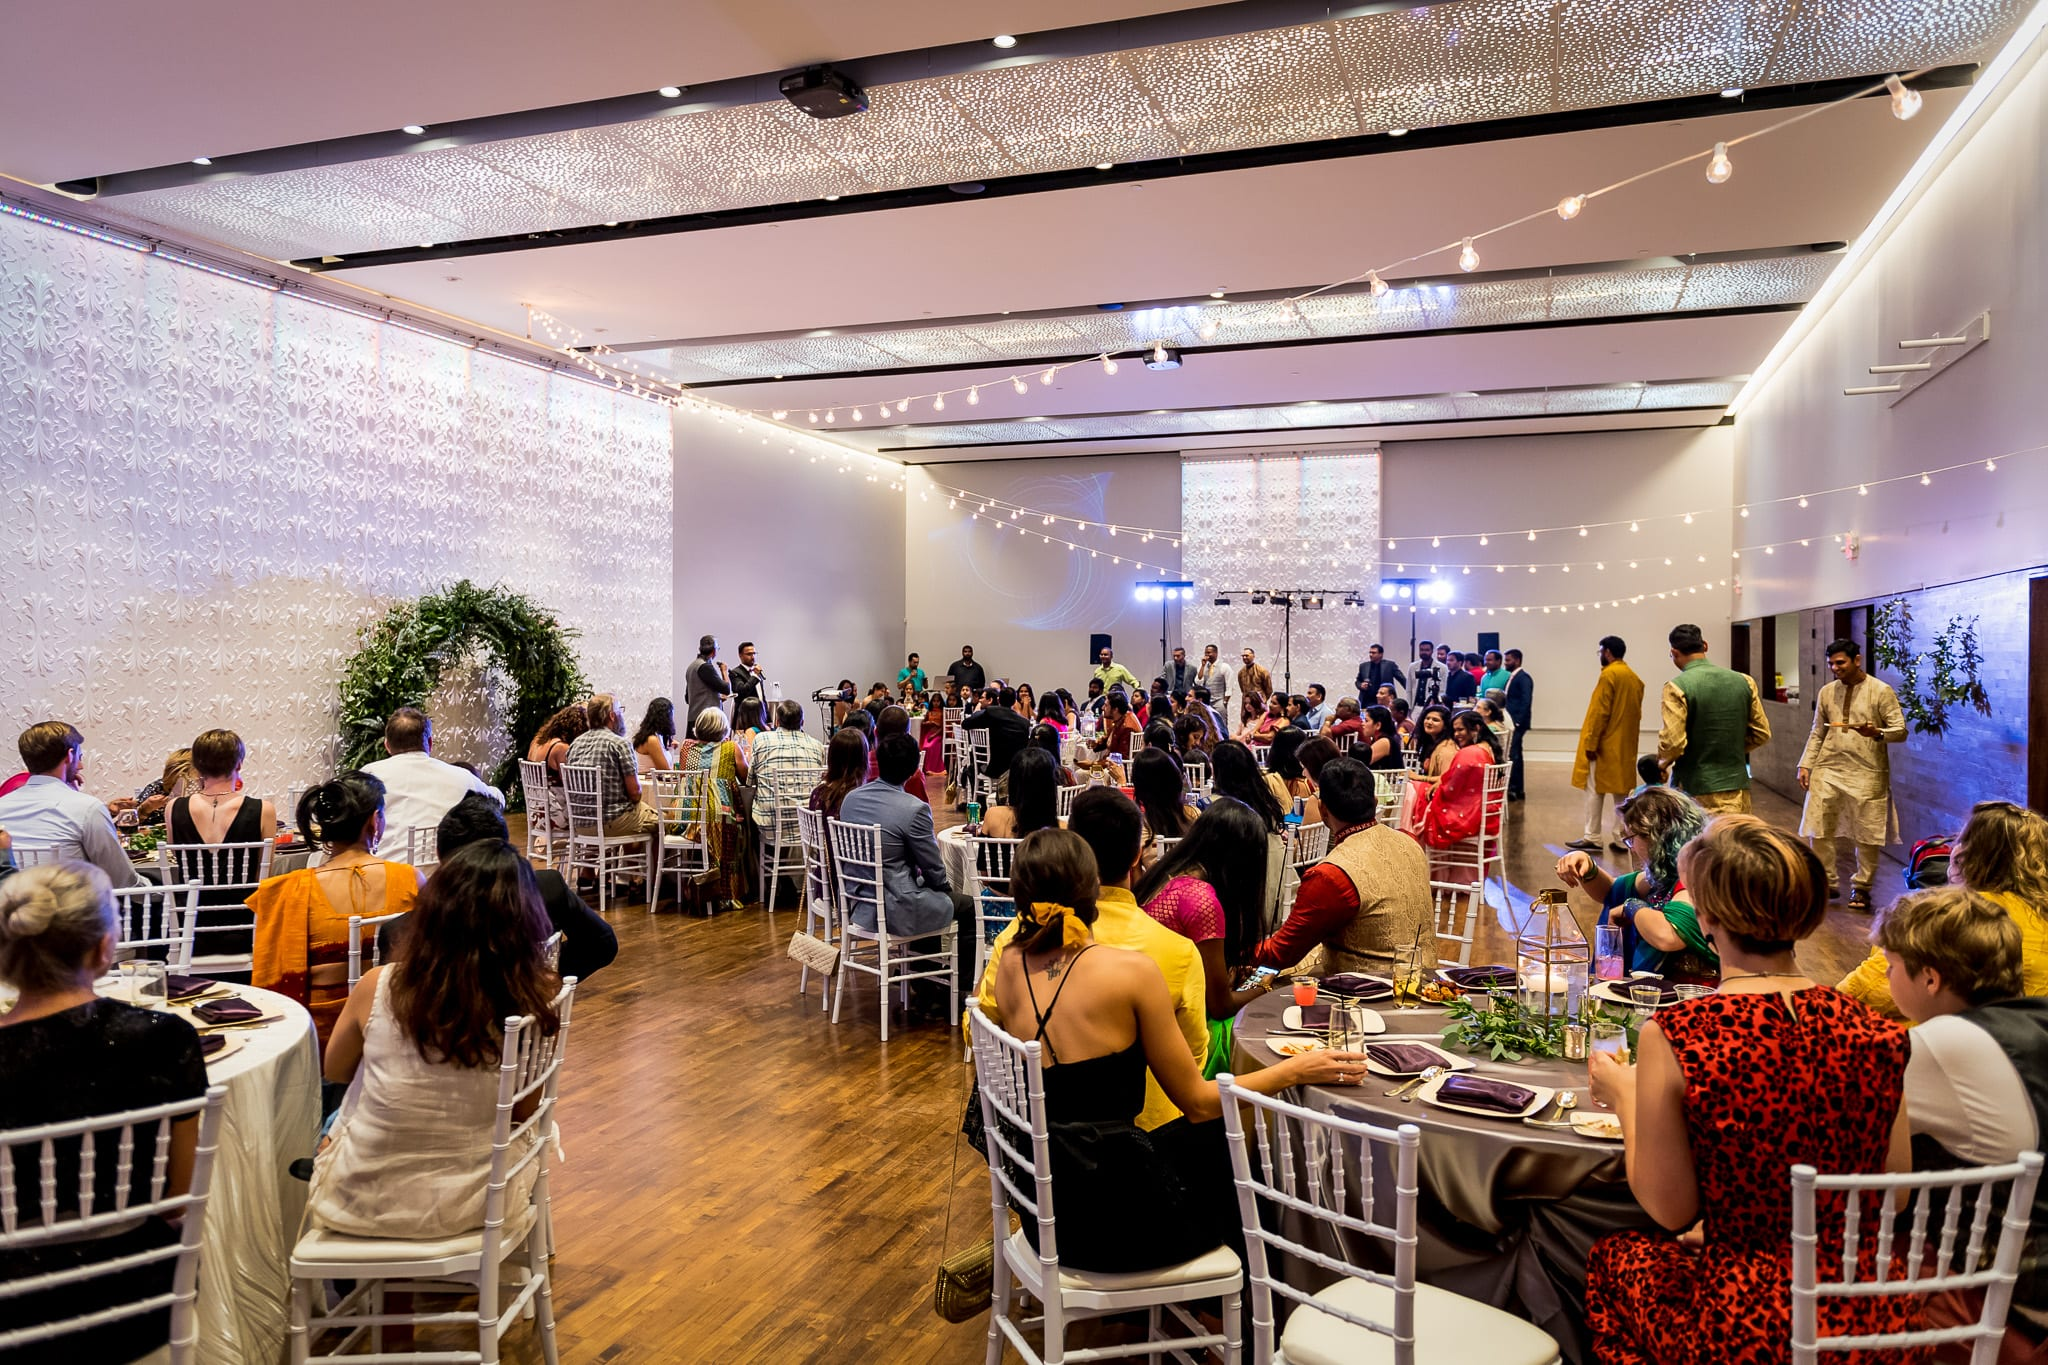 Wide angle shot of the large main room of The Blaisdell during a wedding reception